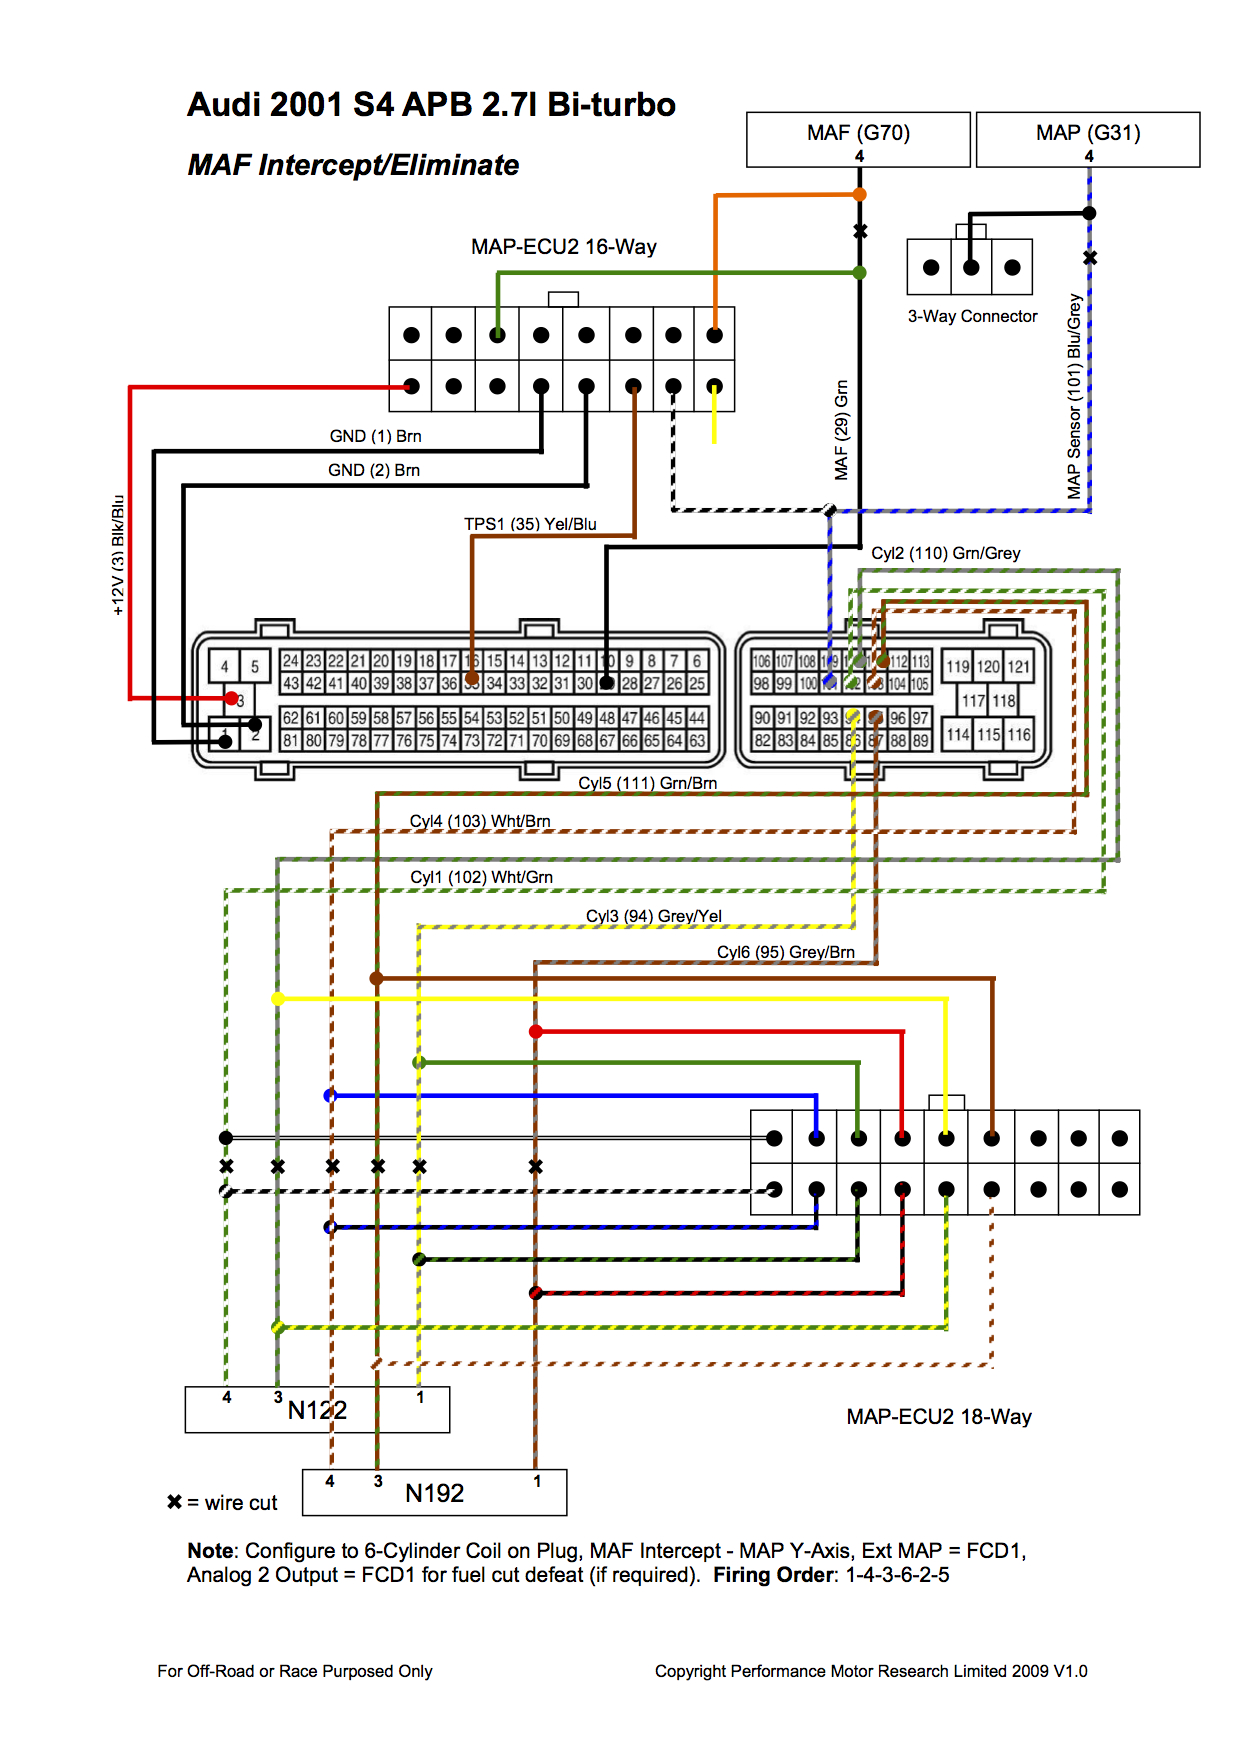 Audi S4 20011 ecu wiring diagram paccar ecu wiring diagram \u2022 wiring diagrams j sr20ve wiring diagram at edmiracle.co